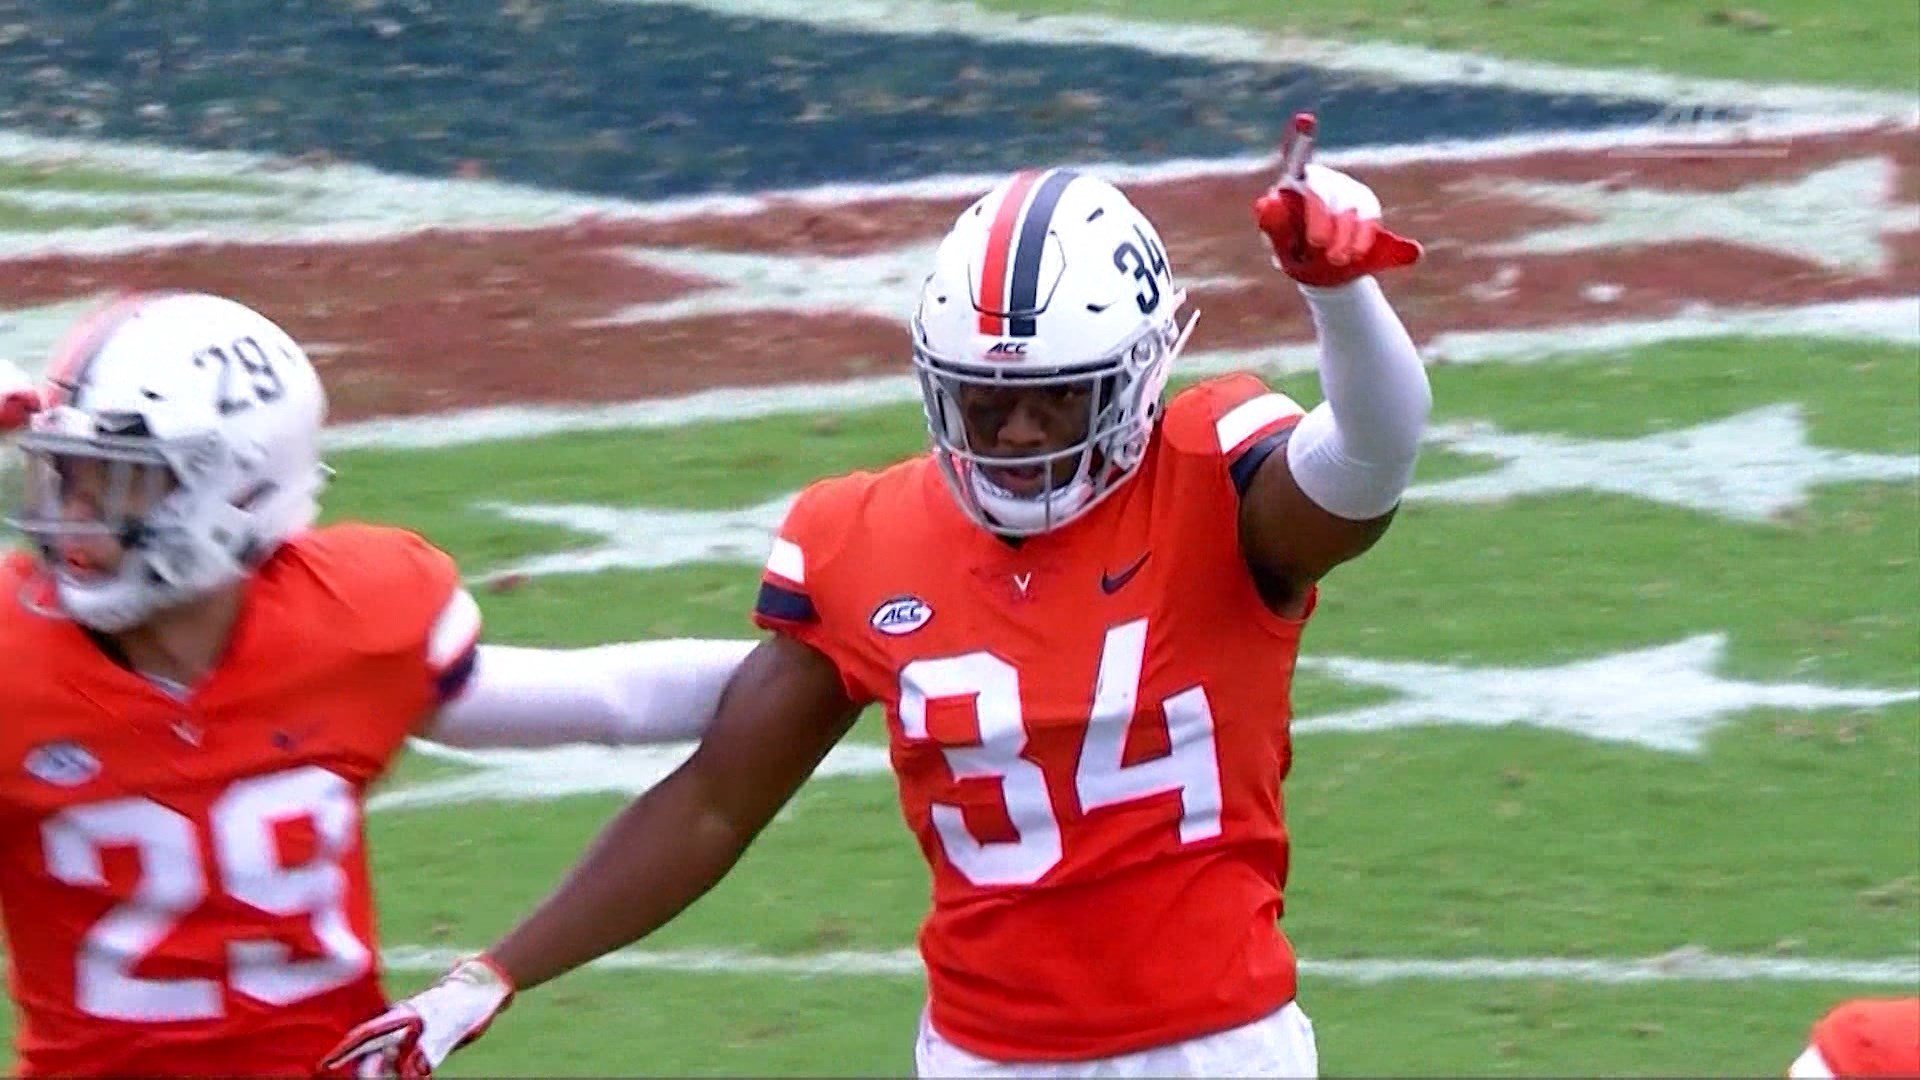 UVa's Bryce Hall Hall Named to Walter Camp Player of the Year Award Preseason Watch List